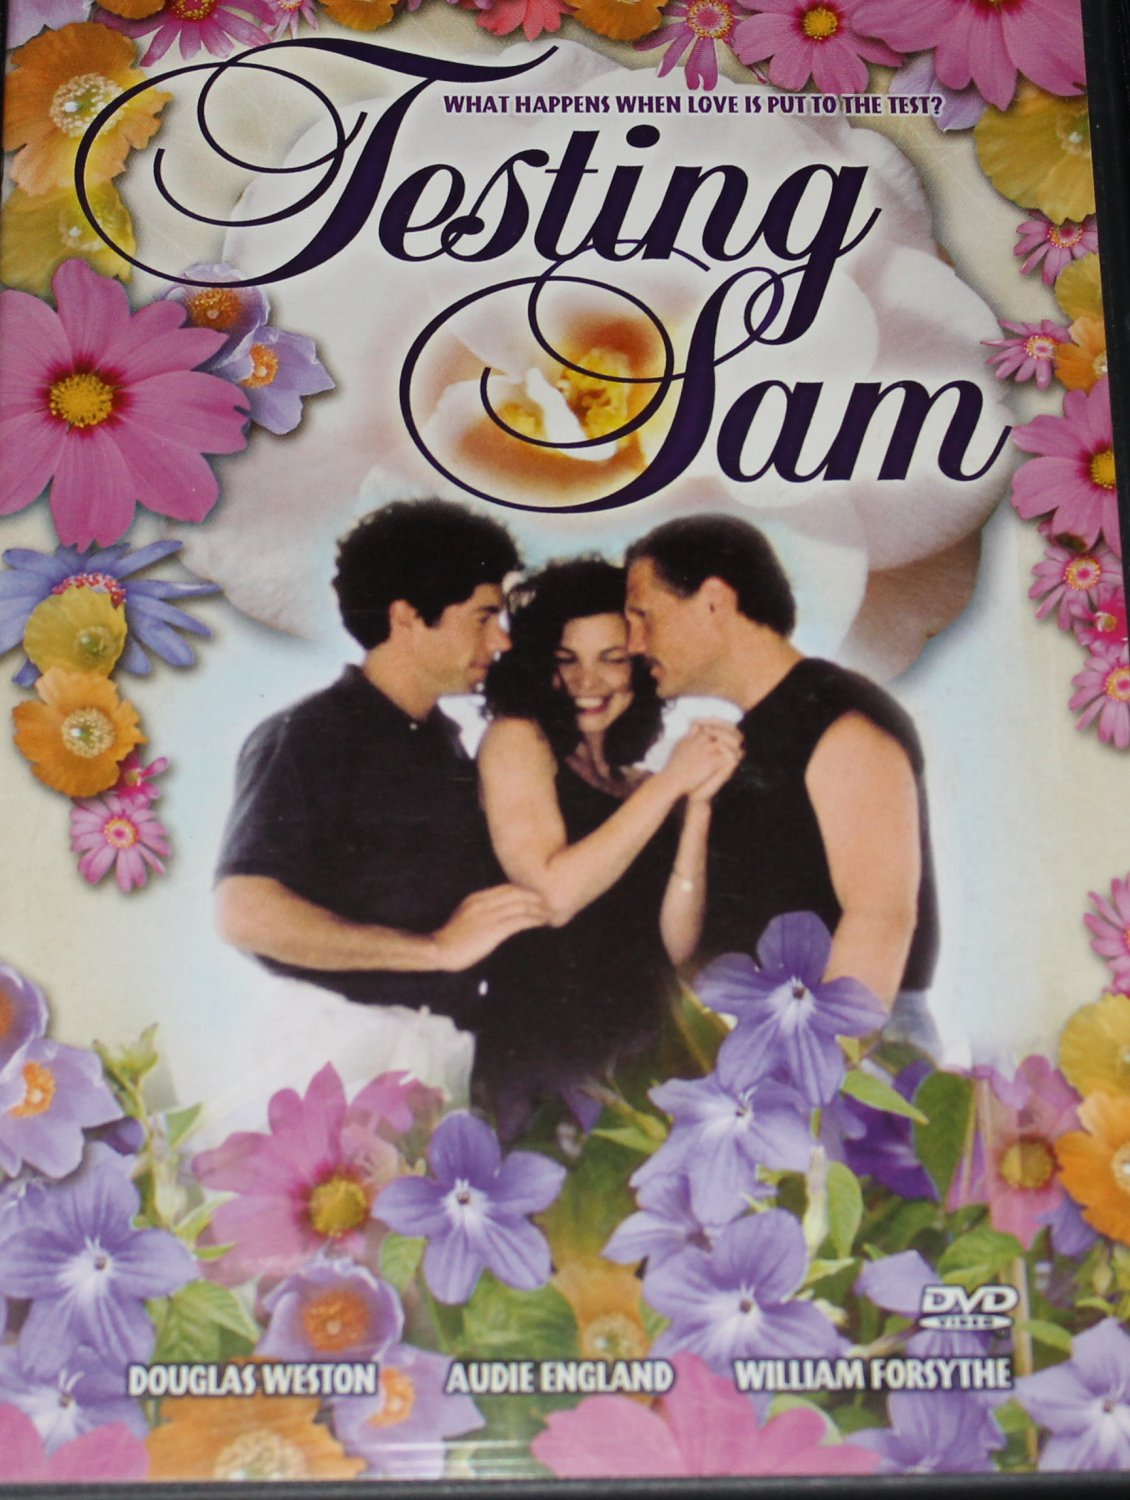 TESTING SAM DVD drama dvd romance love passion marriage romantic film on dvd movie